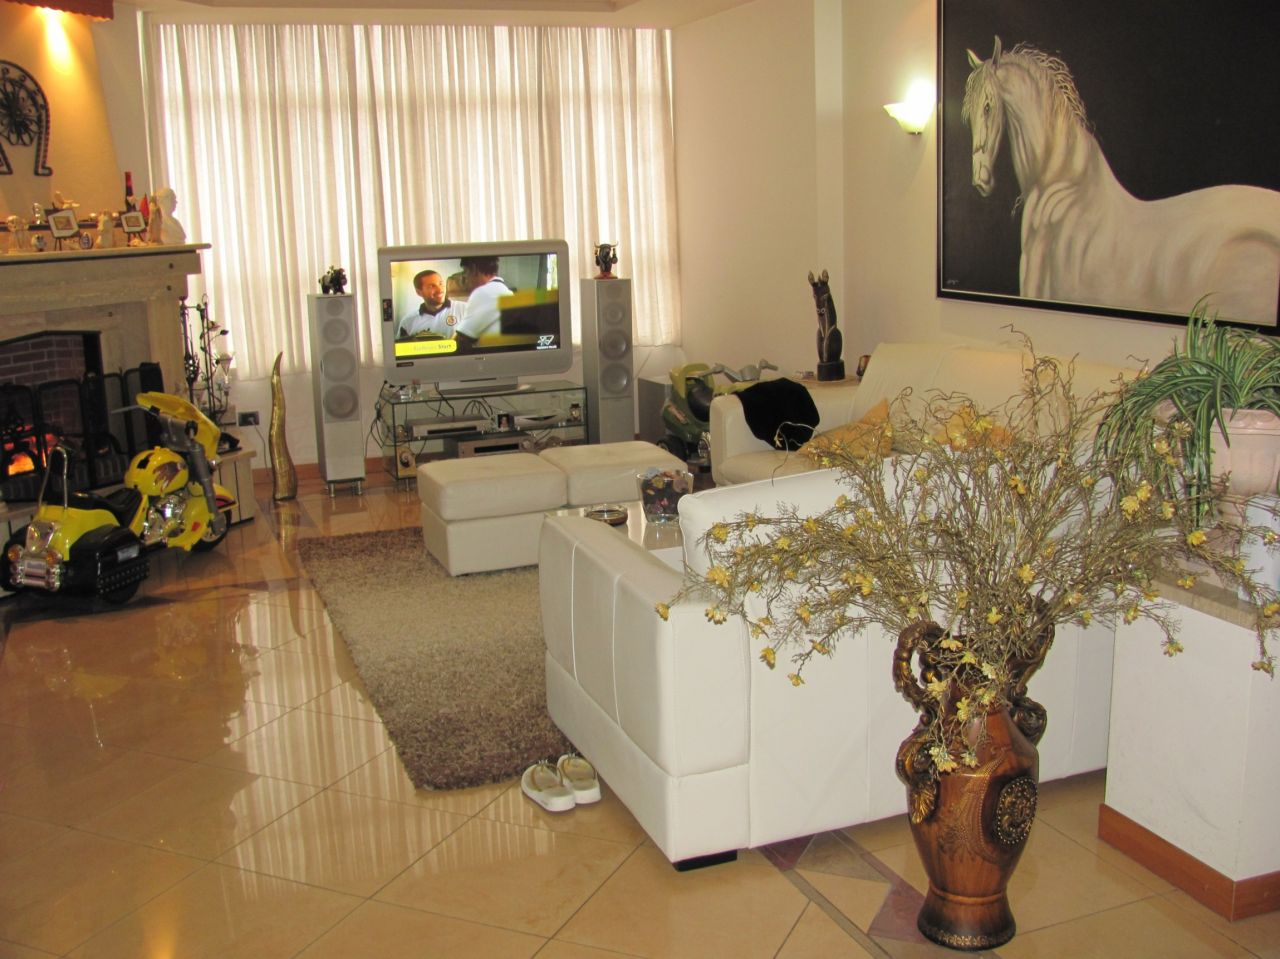 Real Estate in Albania. Apartment in Tirana for sale